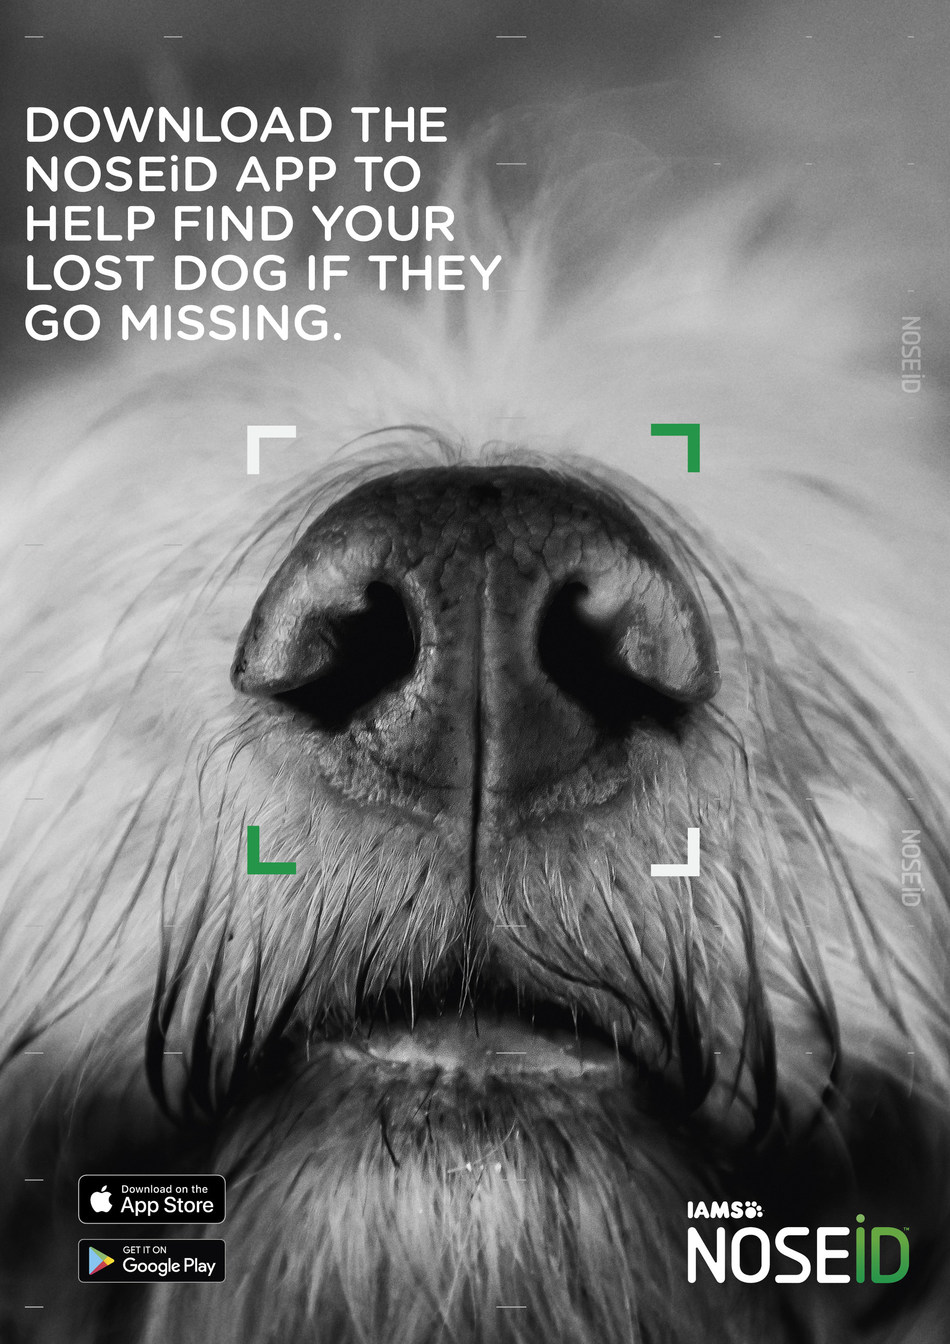 The new NOSEiD app from the IAMS brand helps bring lost dogs home.